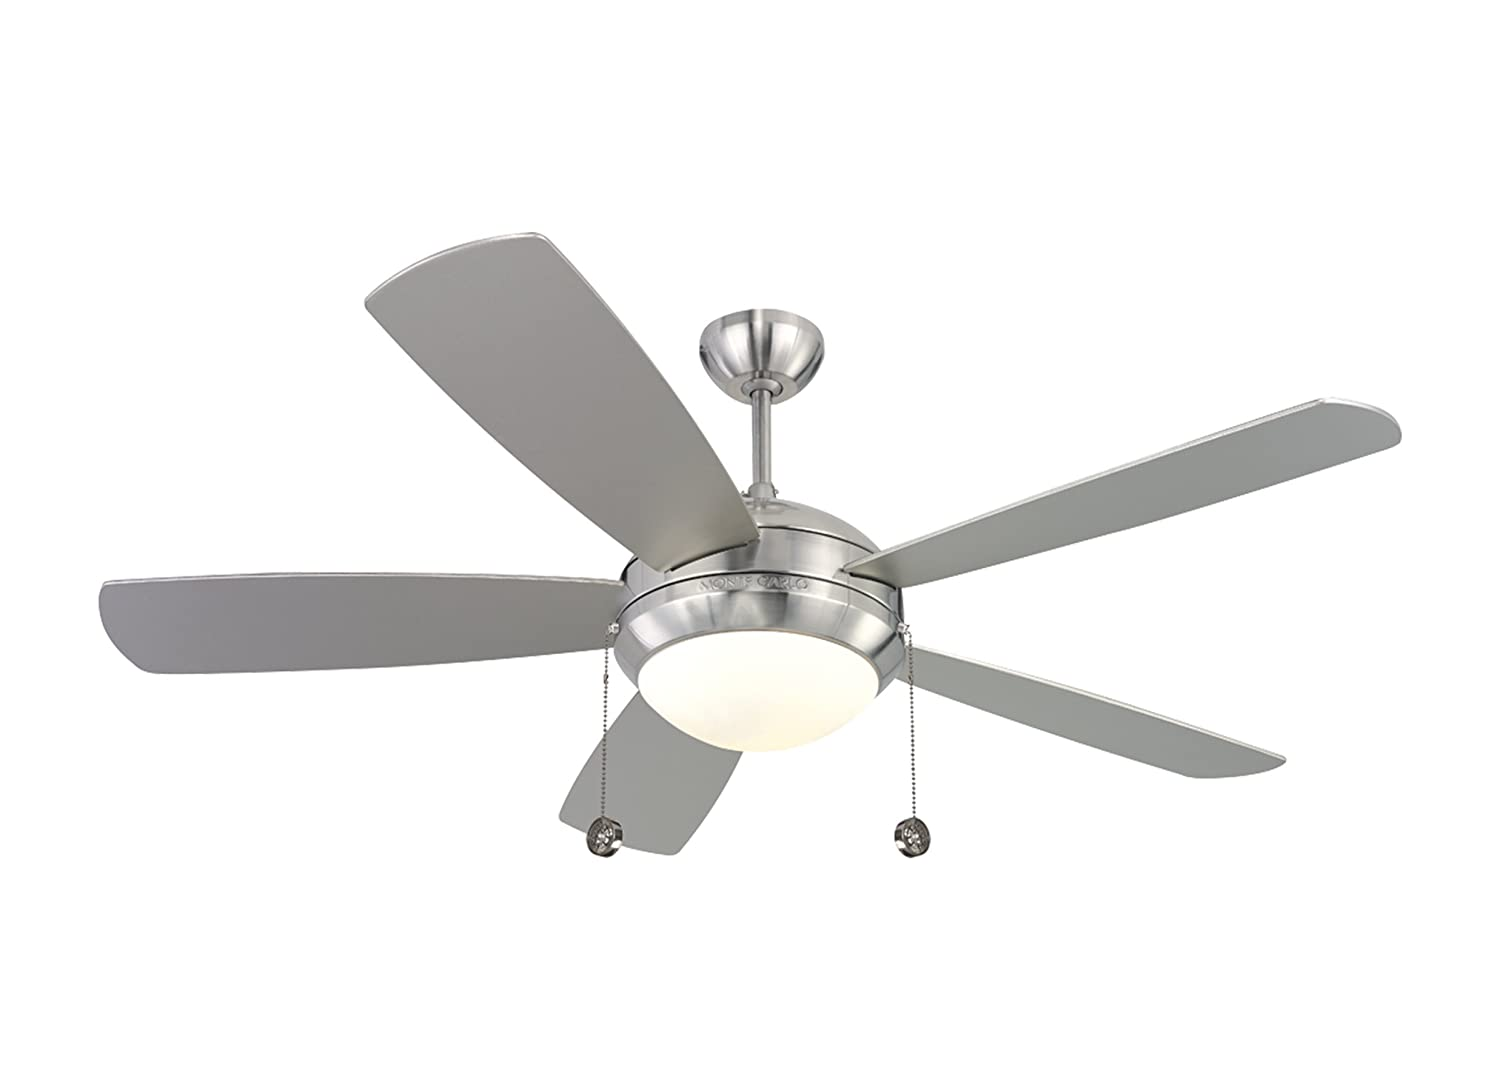 """Monte Carlo 5DI52BSD-L, Discus, 52"""" Ceiling Fan, Brushed Steel - Outdoor  Ceiling Fans With Lights - Amazon.com"""